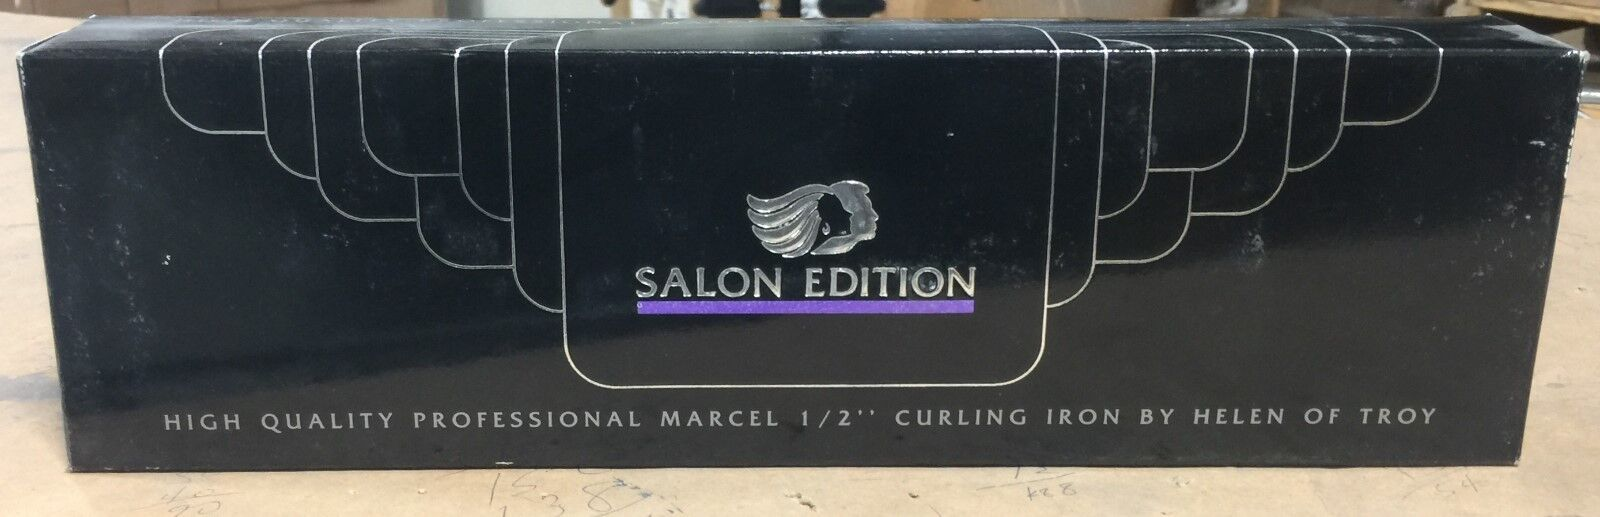 "Helen of Troy Professional Marcel 1/2"" CurlIng Iron - Model"